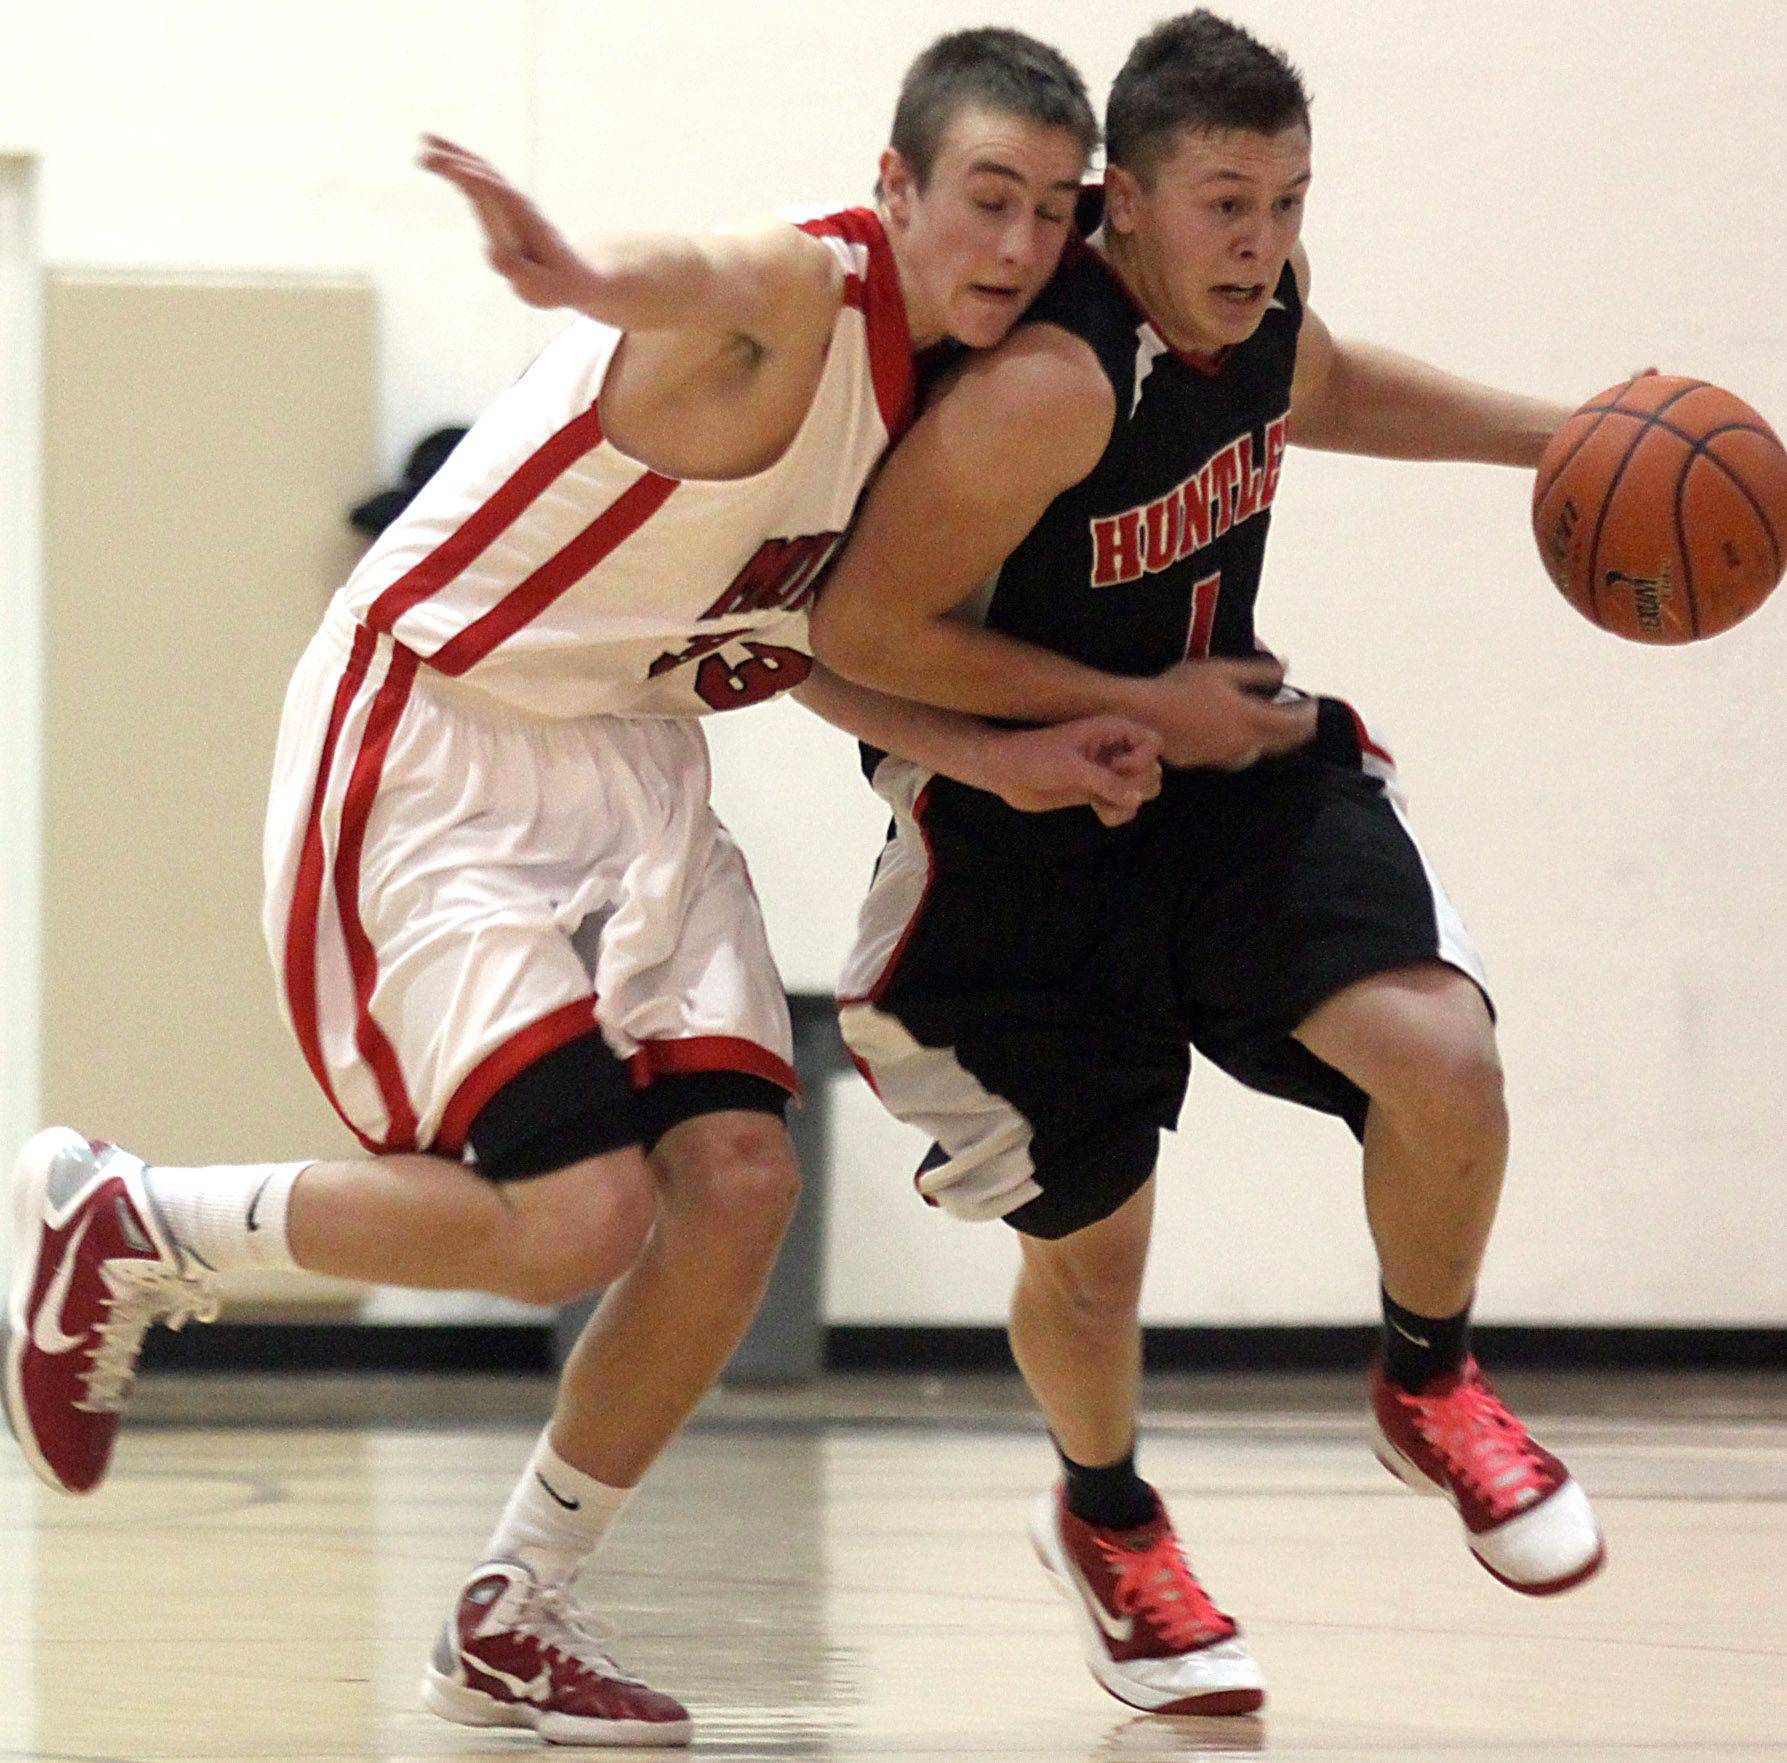 Dylan Neukirch of Huntley, right, and Sean O'Brien of Mundelein race downcourt during the title game of the Jacobs Holiday Classic Boys Basketball Tournament in Algonquin.